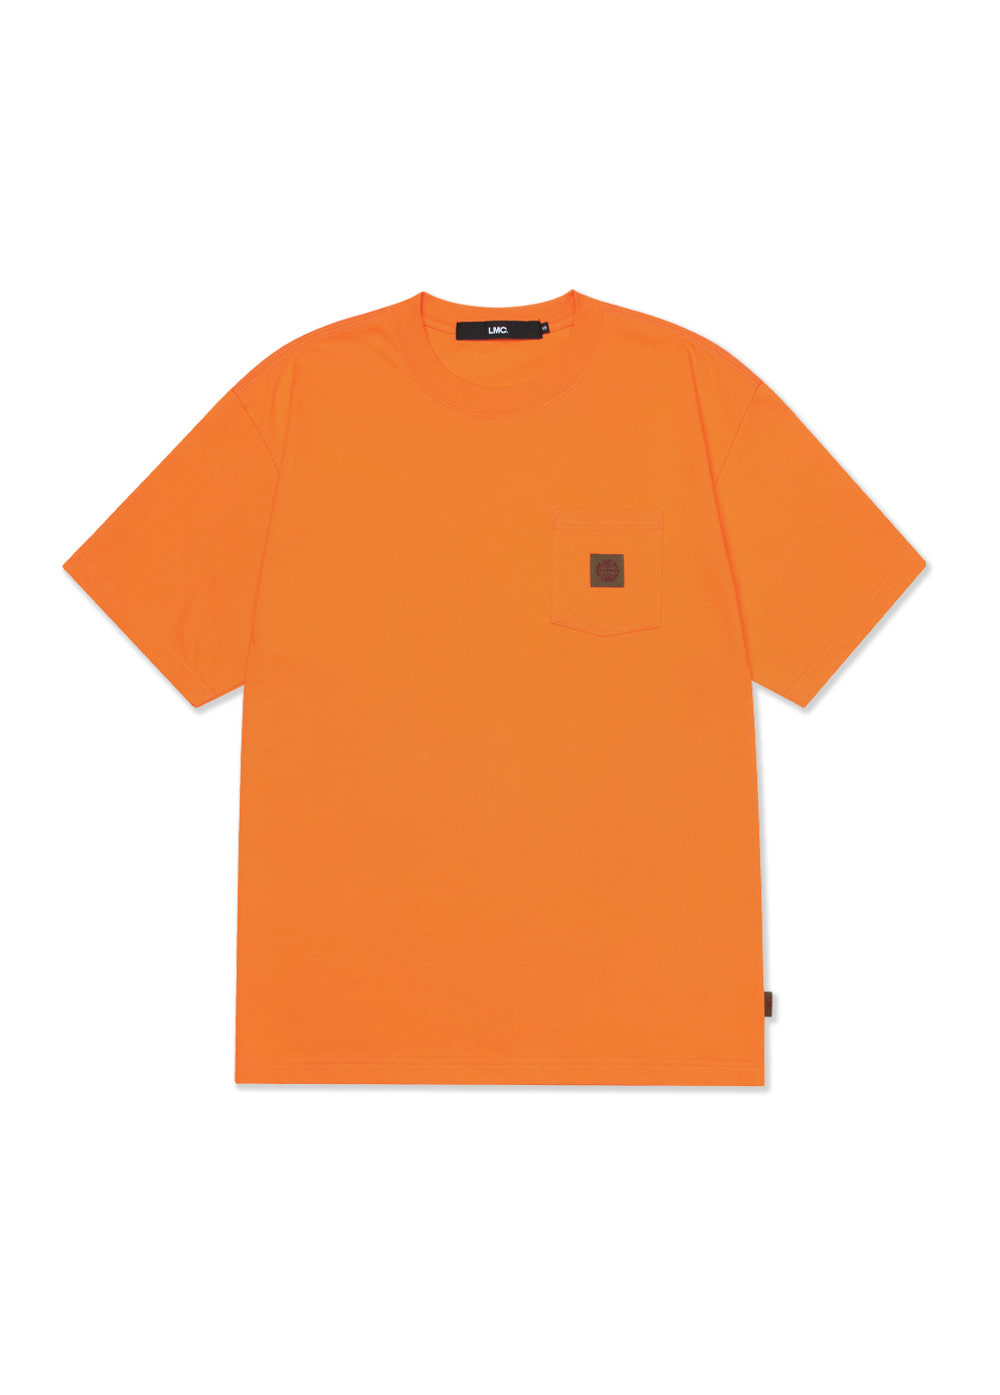 LMC BASIC POCKET TEE orange